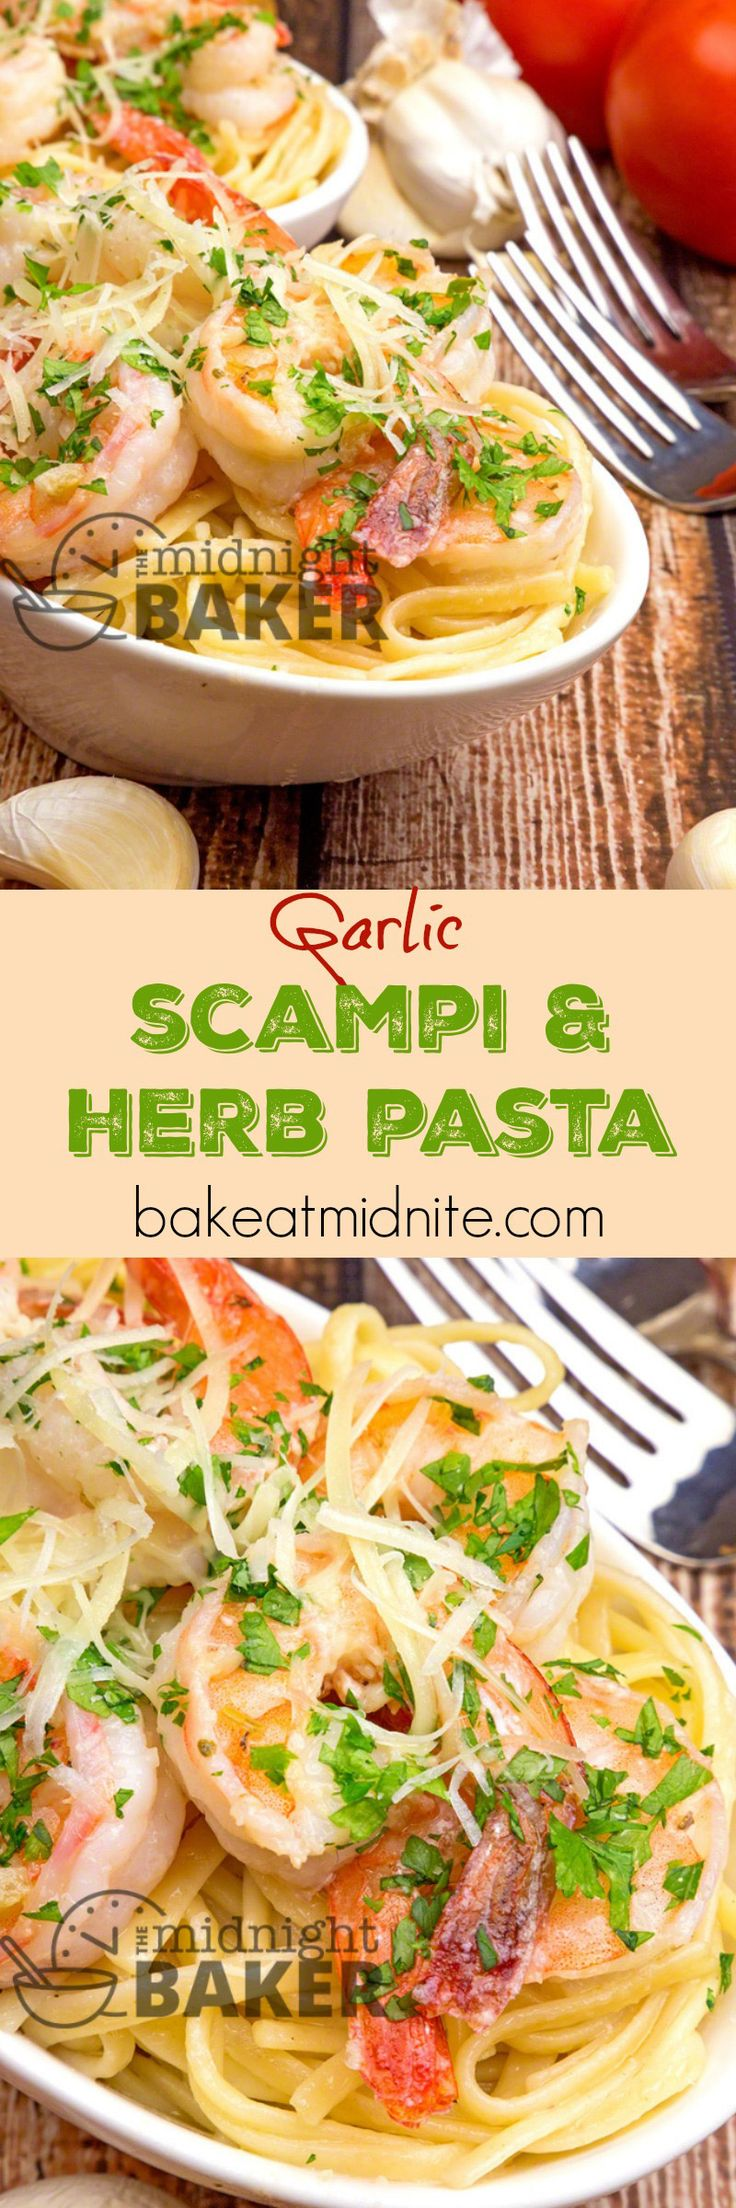 Delicious garlicky shrimp scampi served with a bed of pasta in an olive oil and…